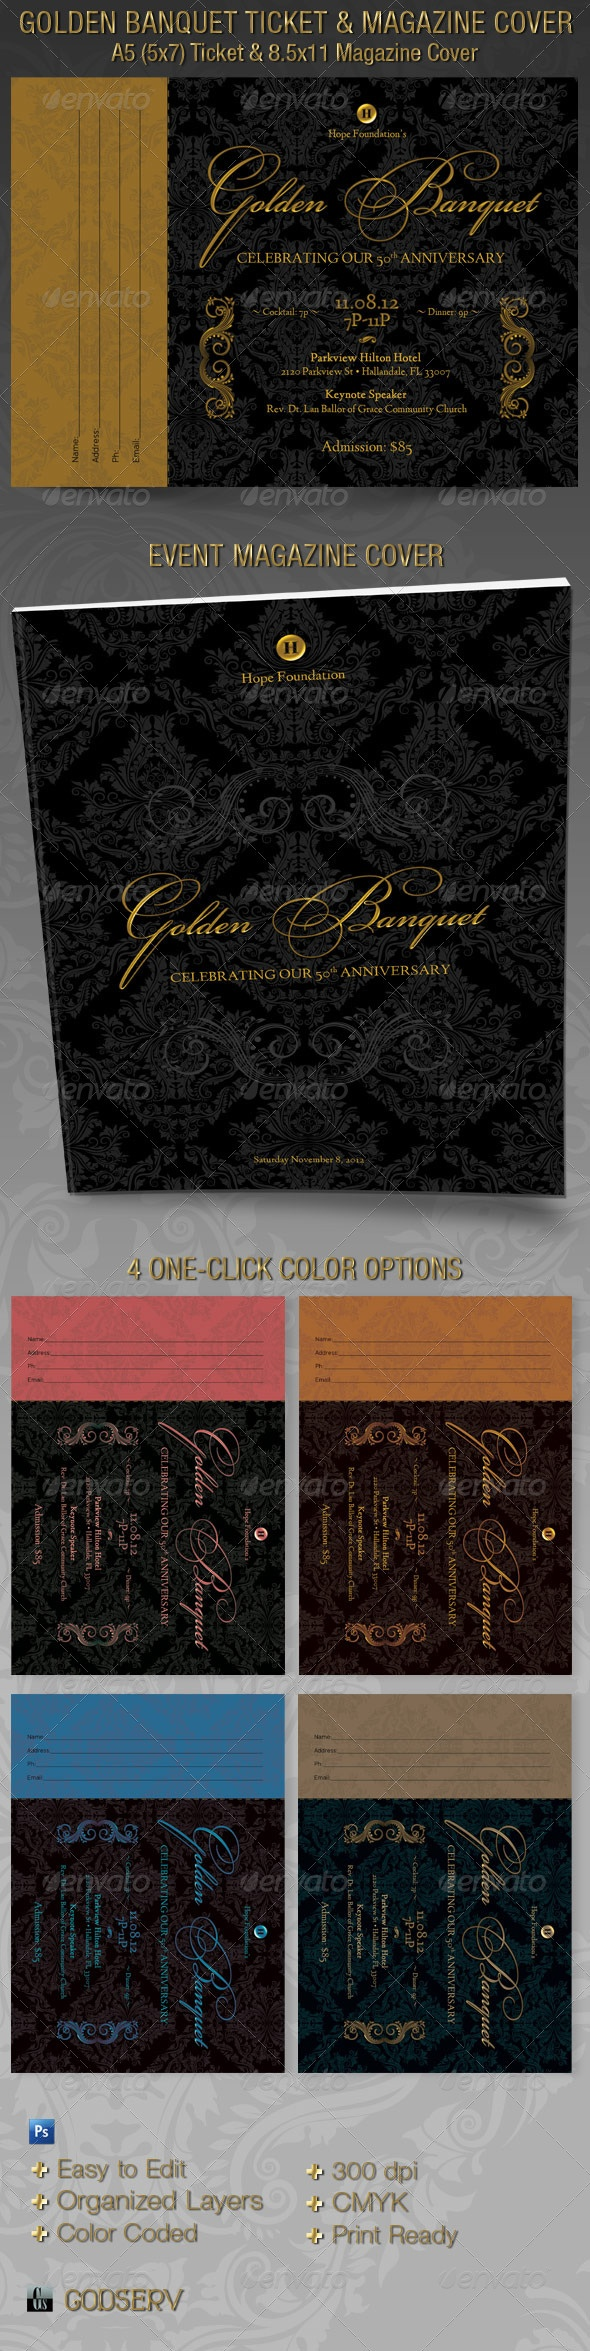 Golden Banquet Ticket and Magazine Cover Template - $6.00